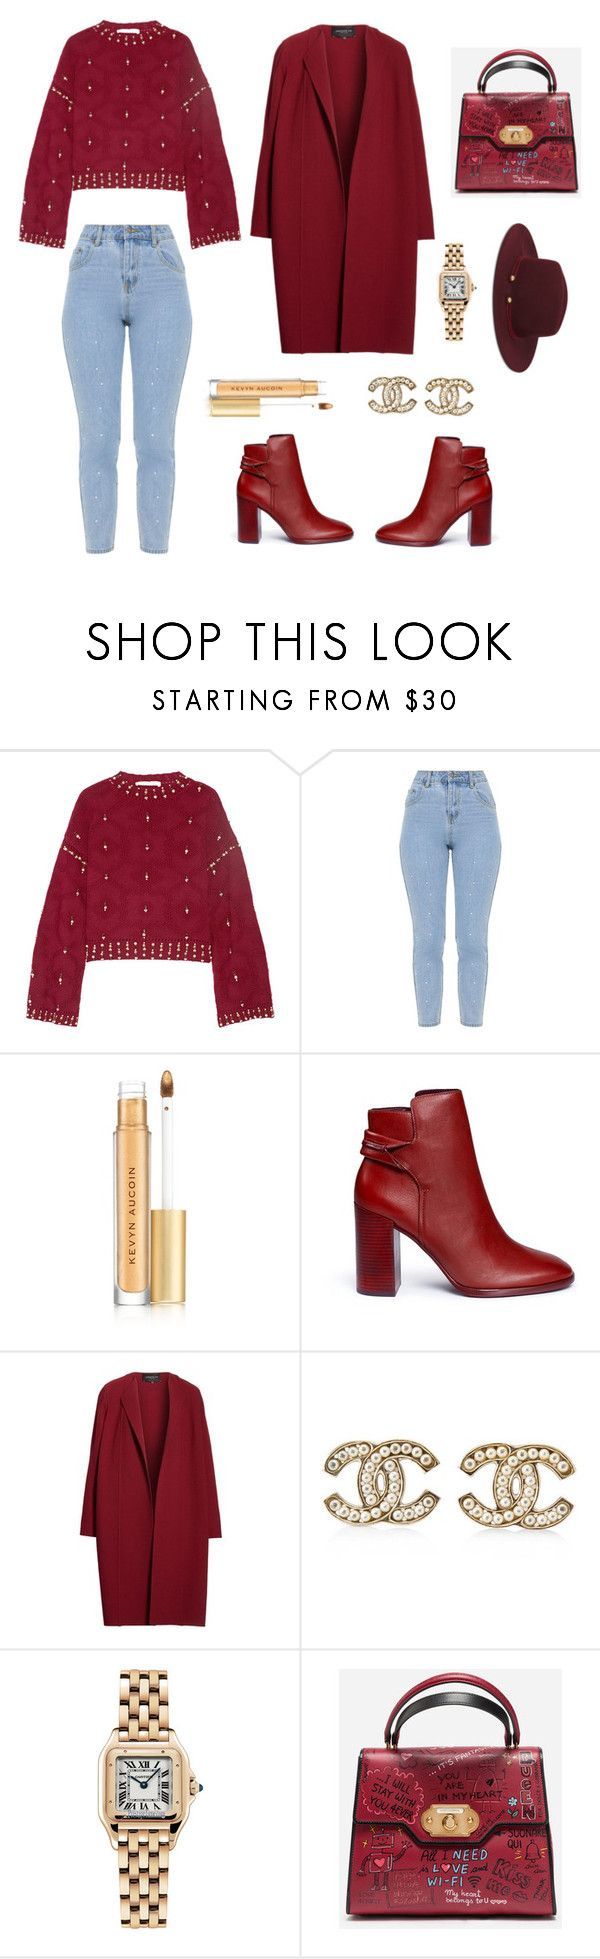 """""""Untitled #270"""" by simplyjazmyn on Polyvore featuring Jonathan Simkhai, Kevyn Aucoin, Mercedes Castillo, Lafayette 148 New York, Chanel, Cartier, Dolce&Gabbana and Nine West"""